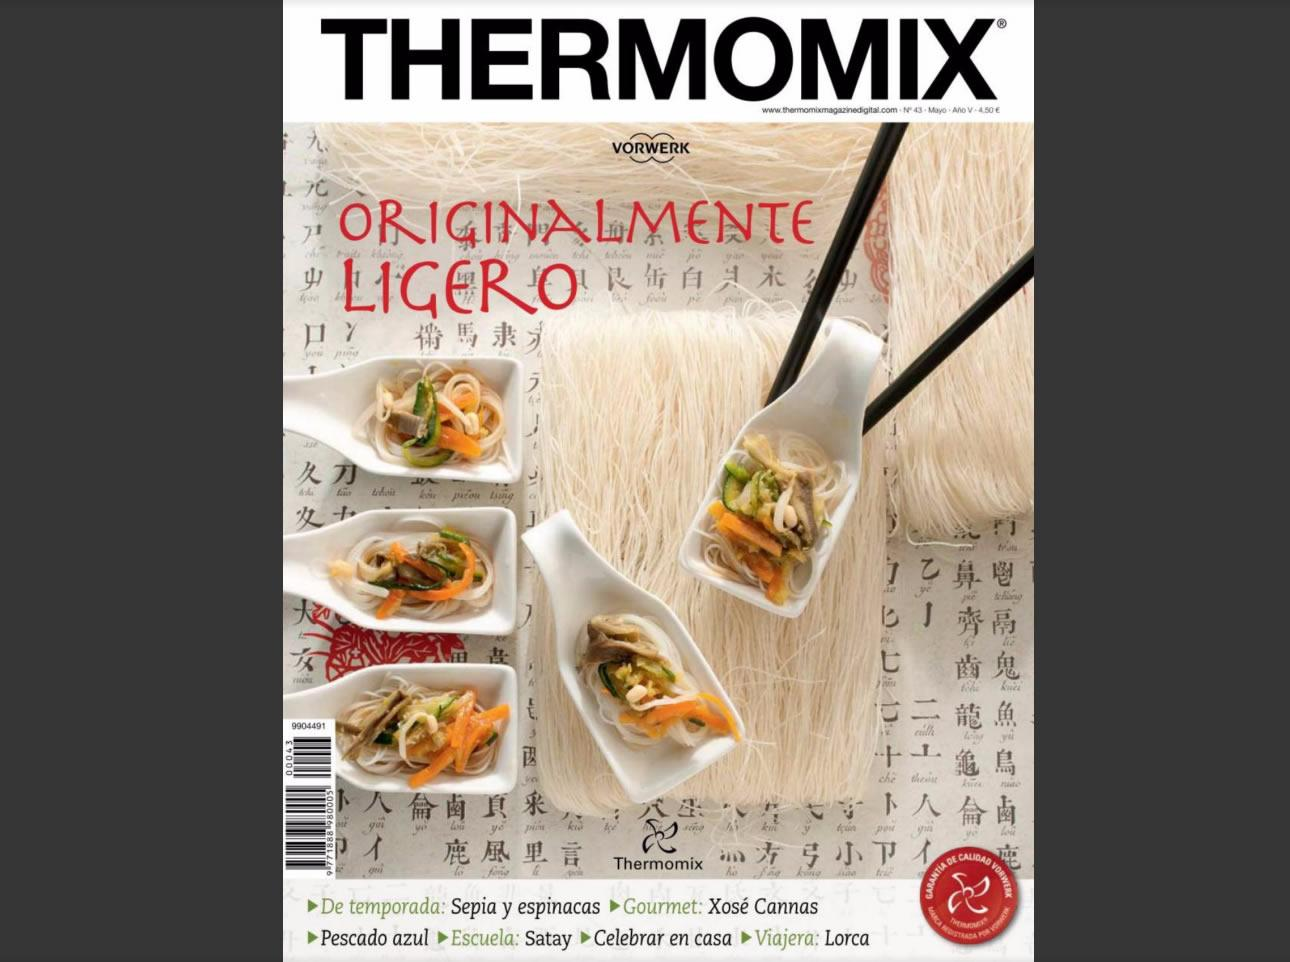 ORIGINALMENTE LIGERO THERMOMIX